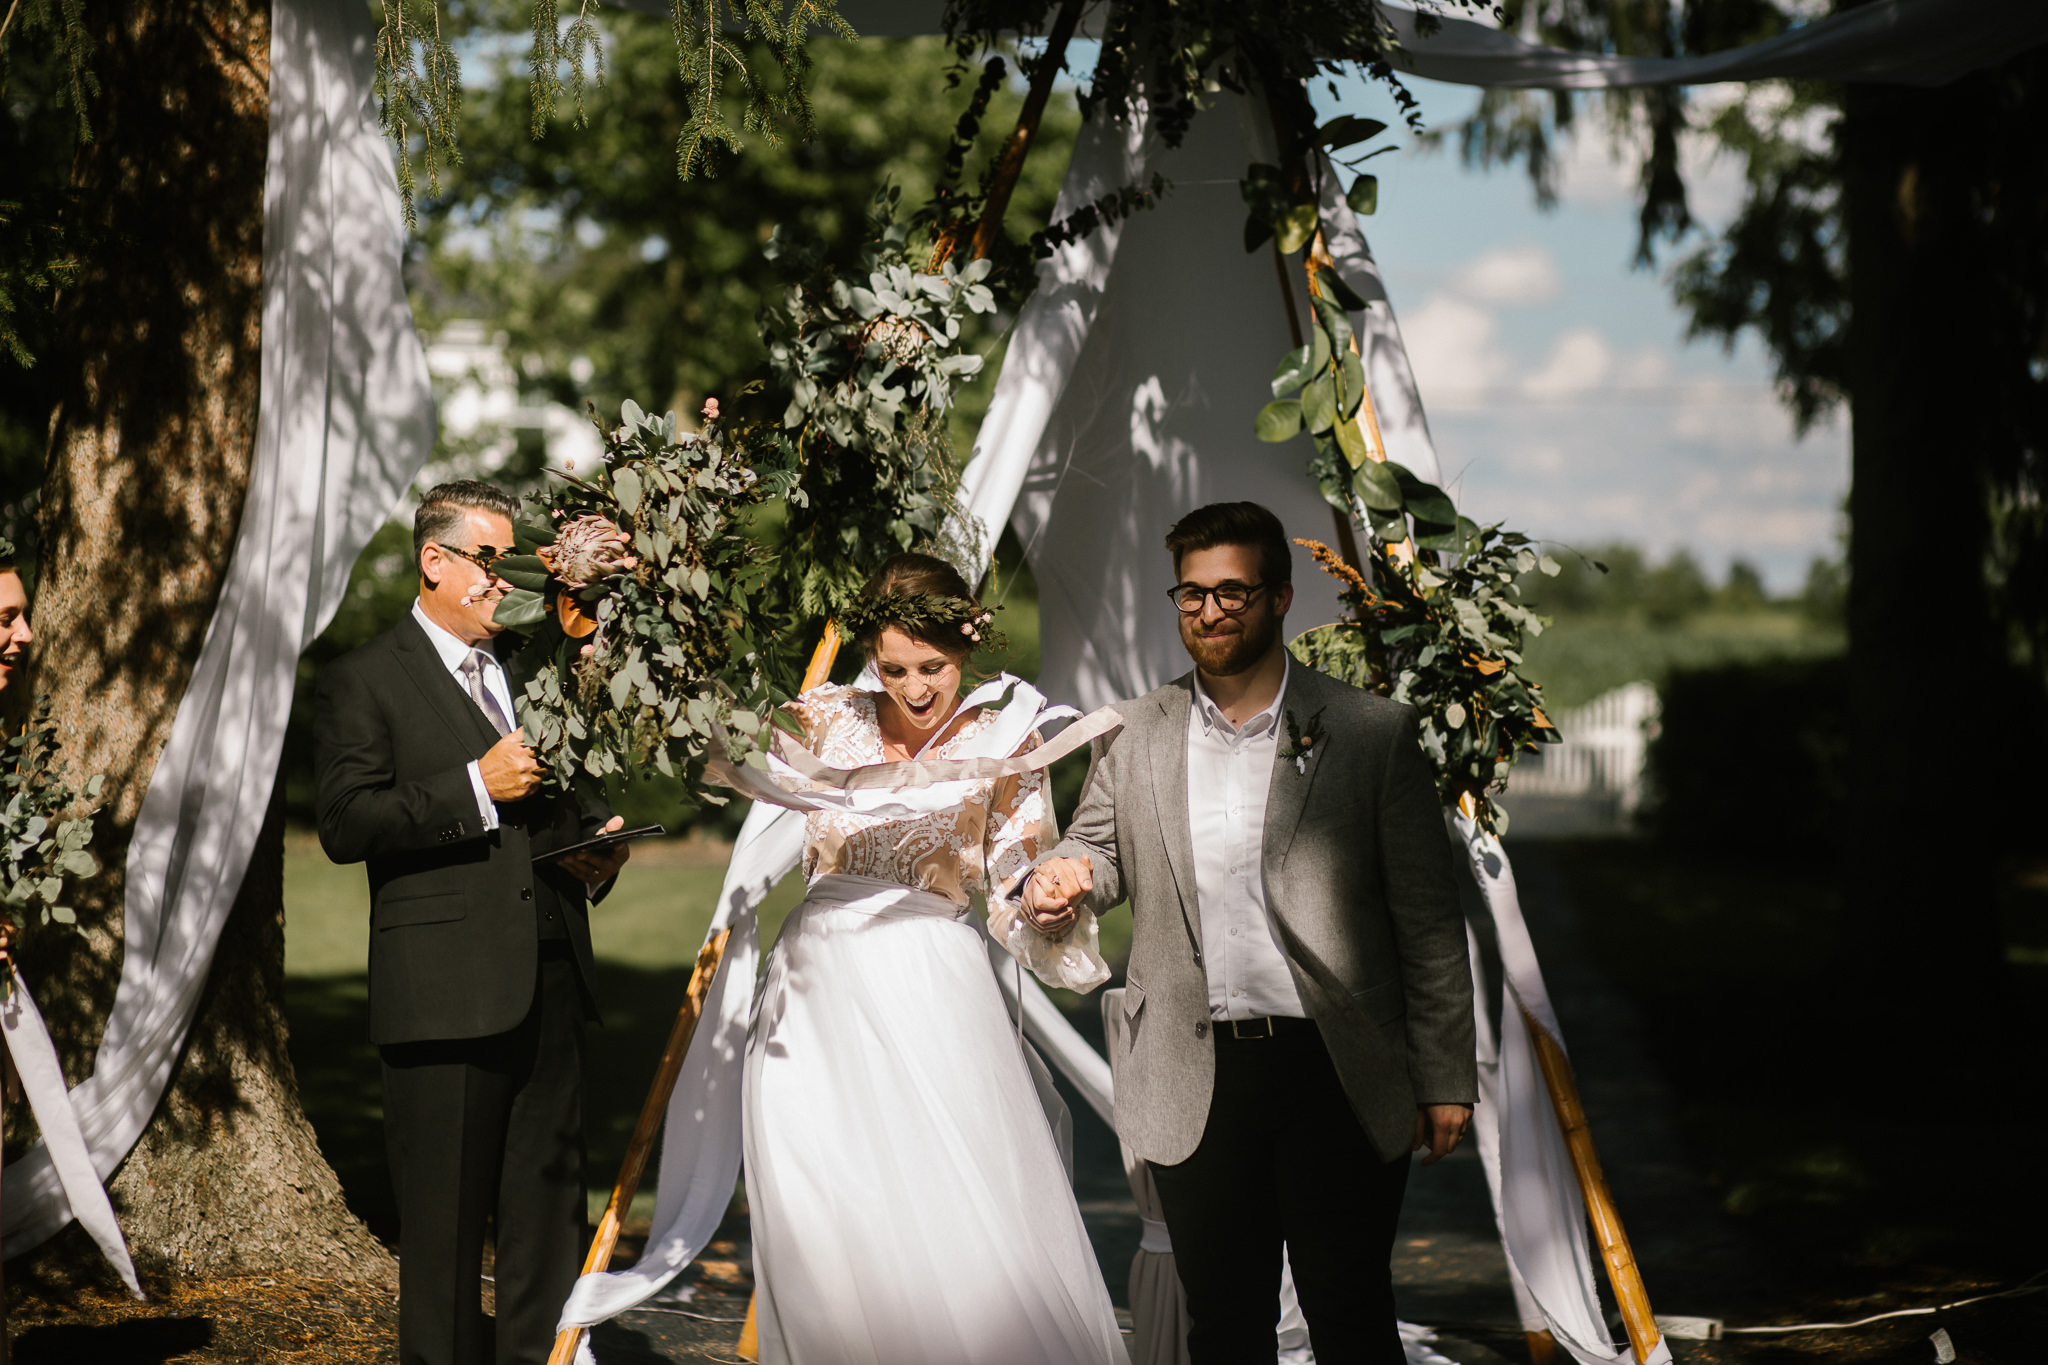 eastlyn and joshua findlay ohio wedding photographers bohemian outdoor wedding-121.jpg